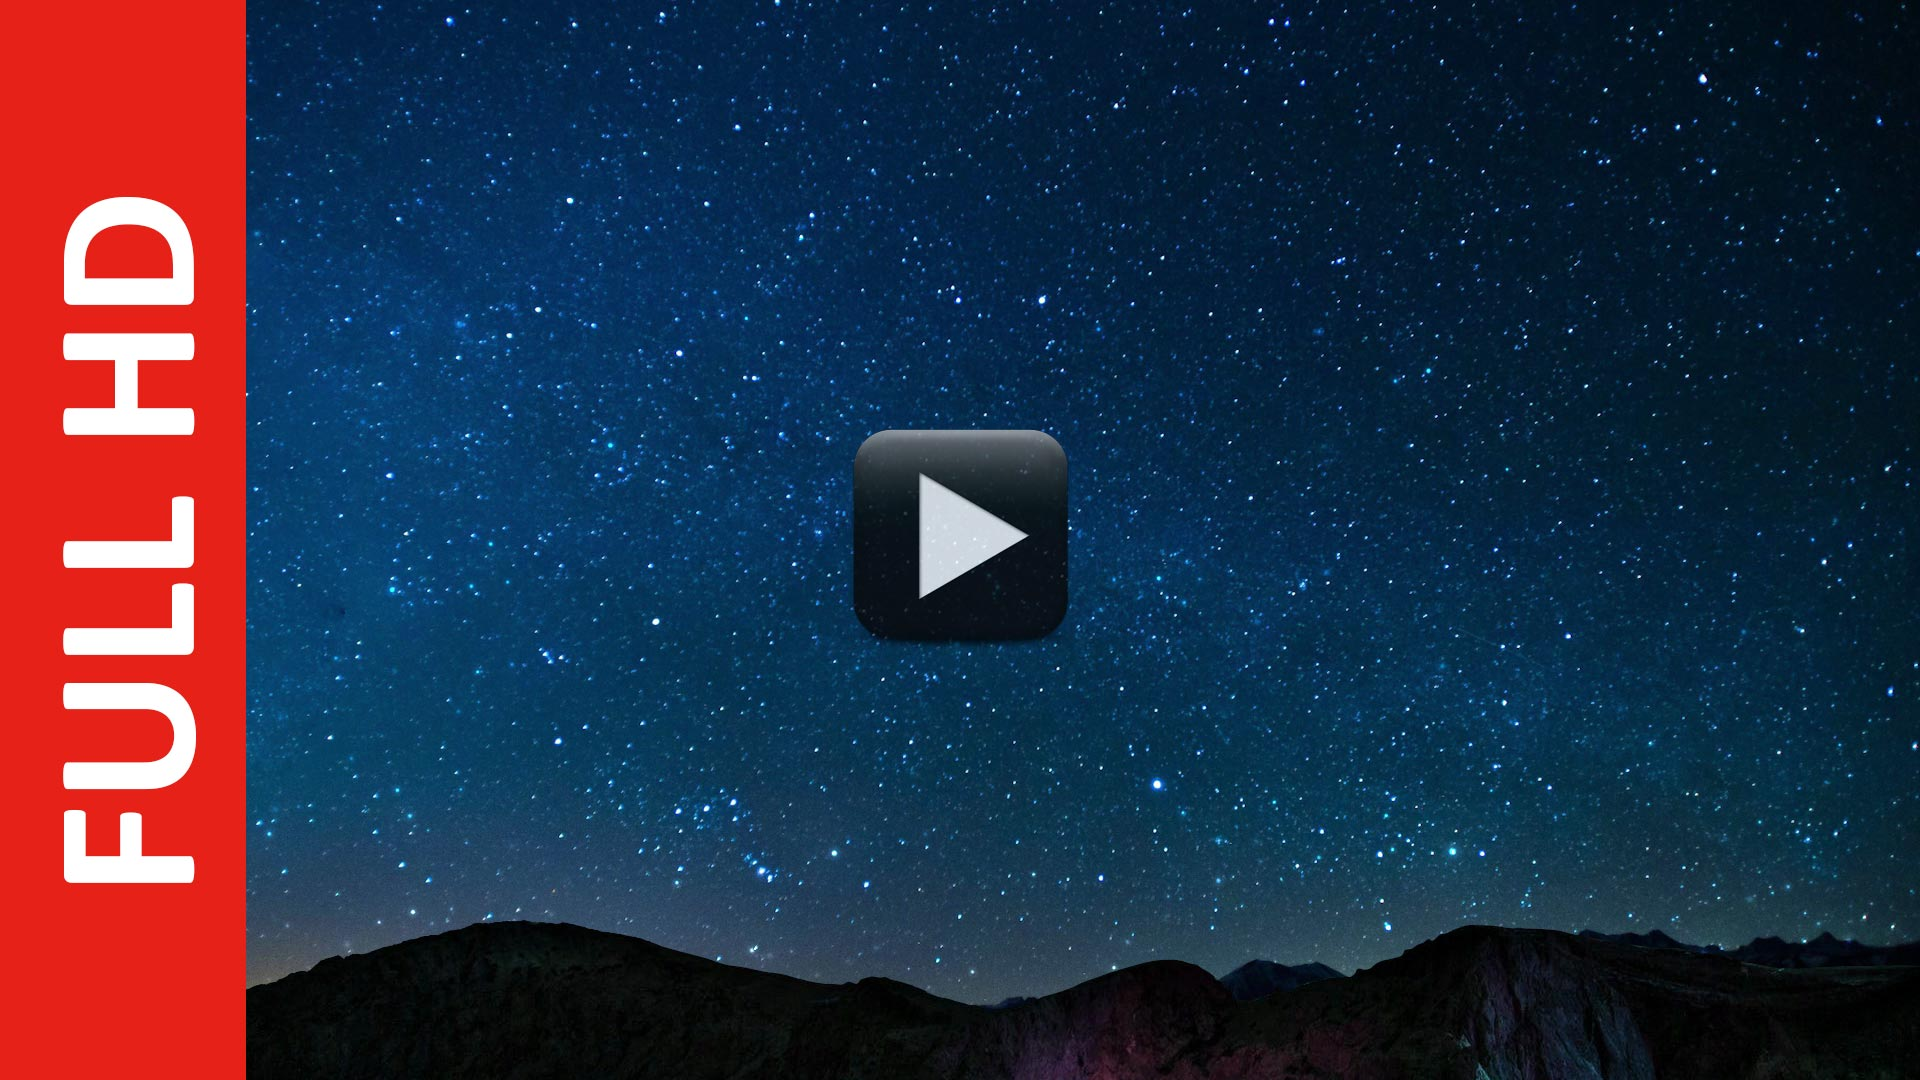 Night Sky Stars Falling Animated Video Background | All Design Creative